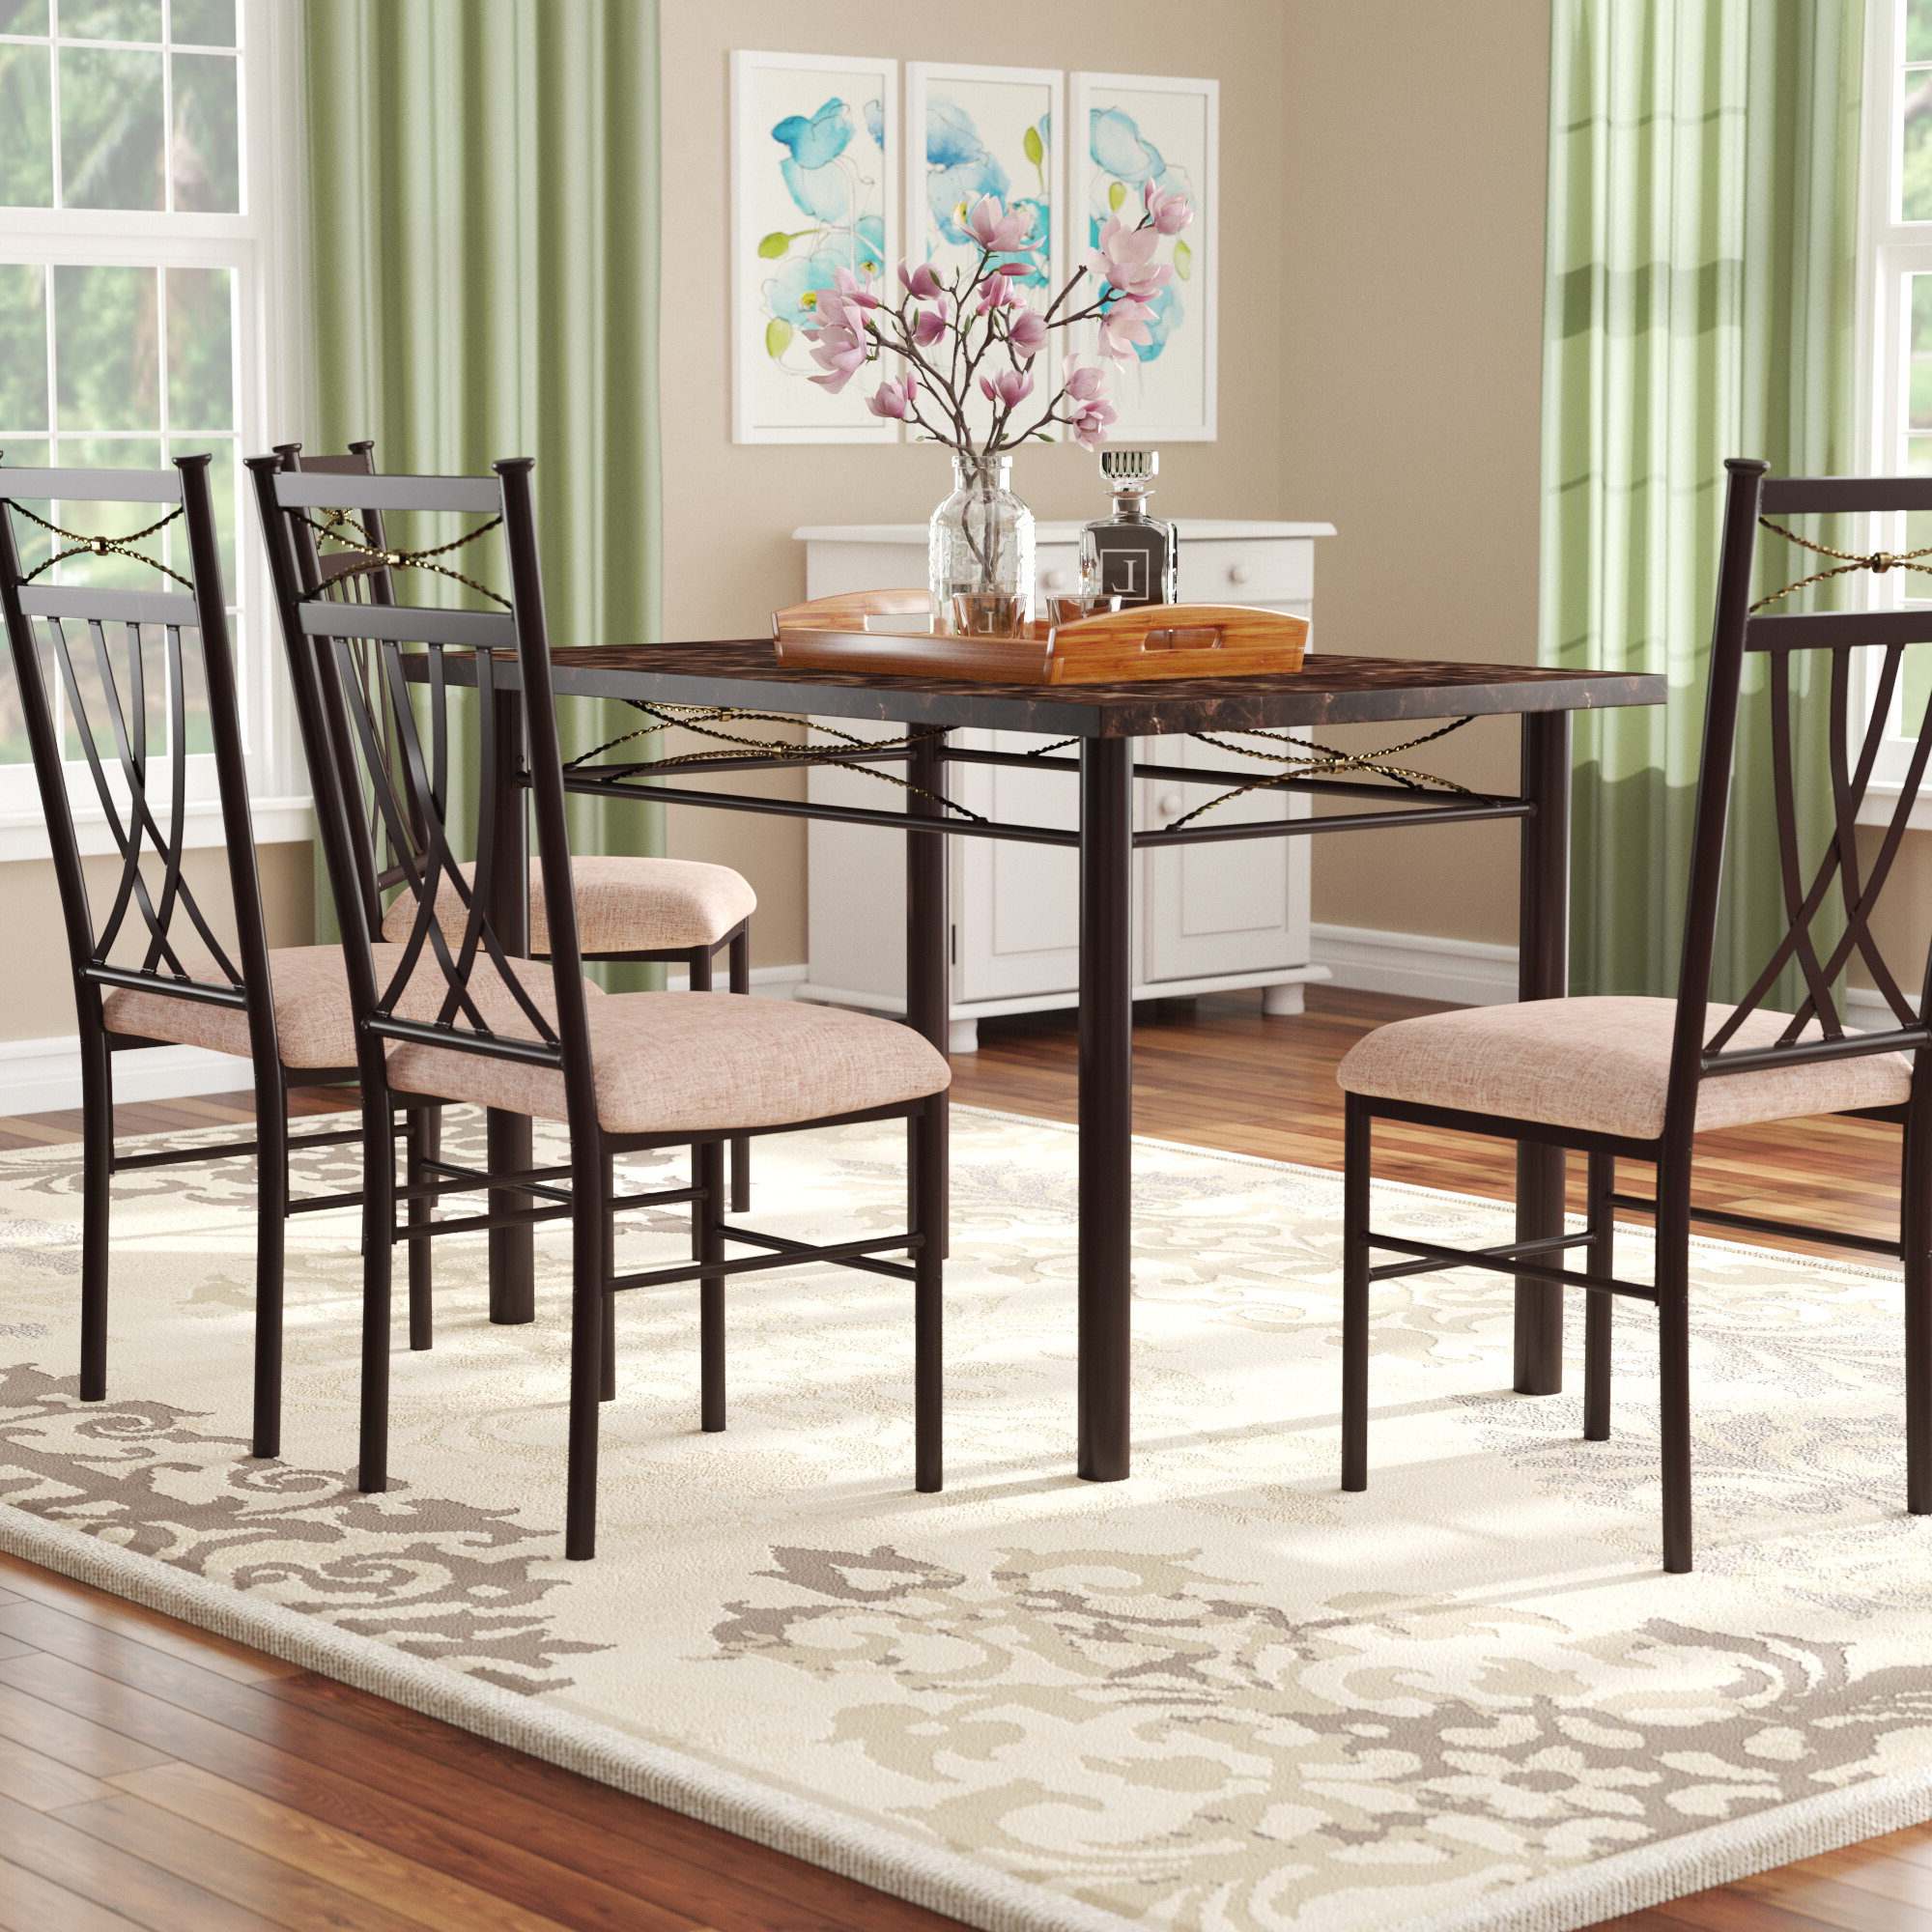 Most Recently Released Autberry 5 Piece Dining Sets Throughout Branden 5 Piece Dining Set (View 8 of 20)